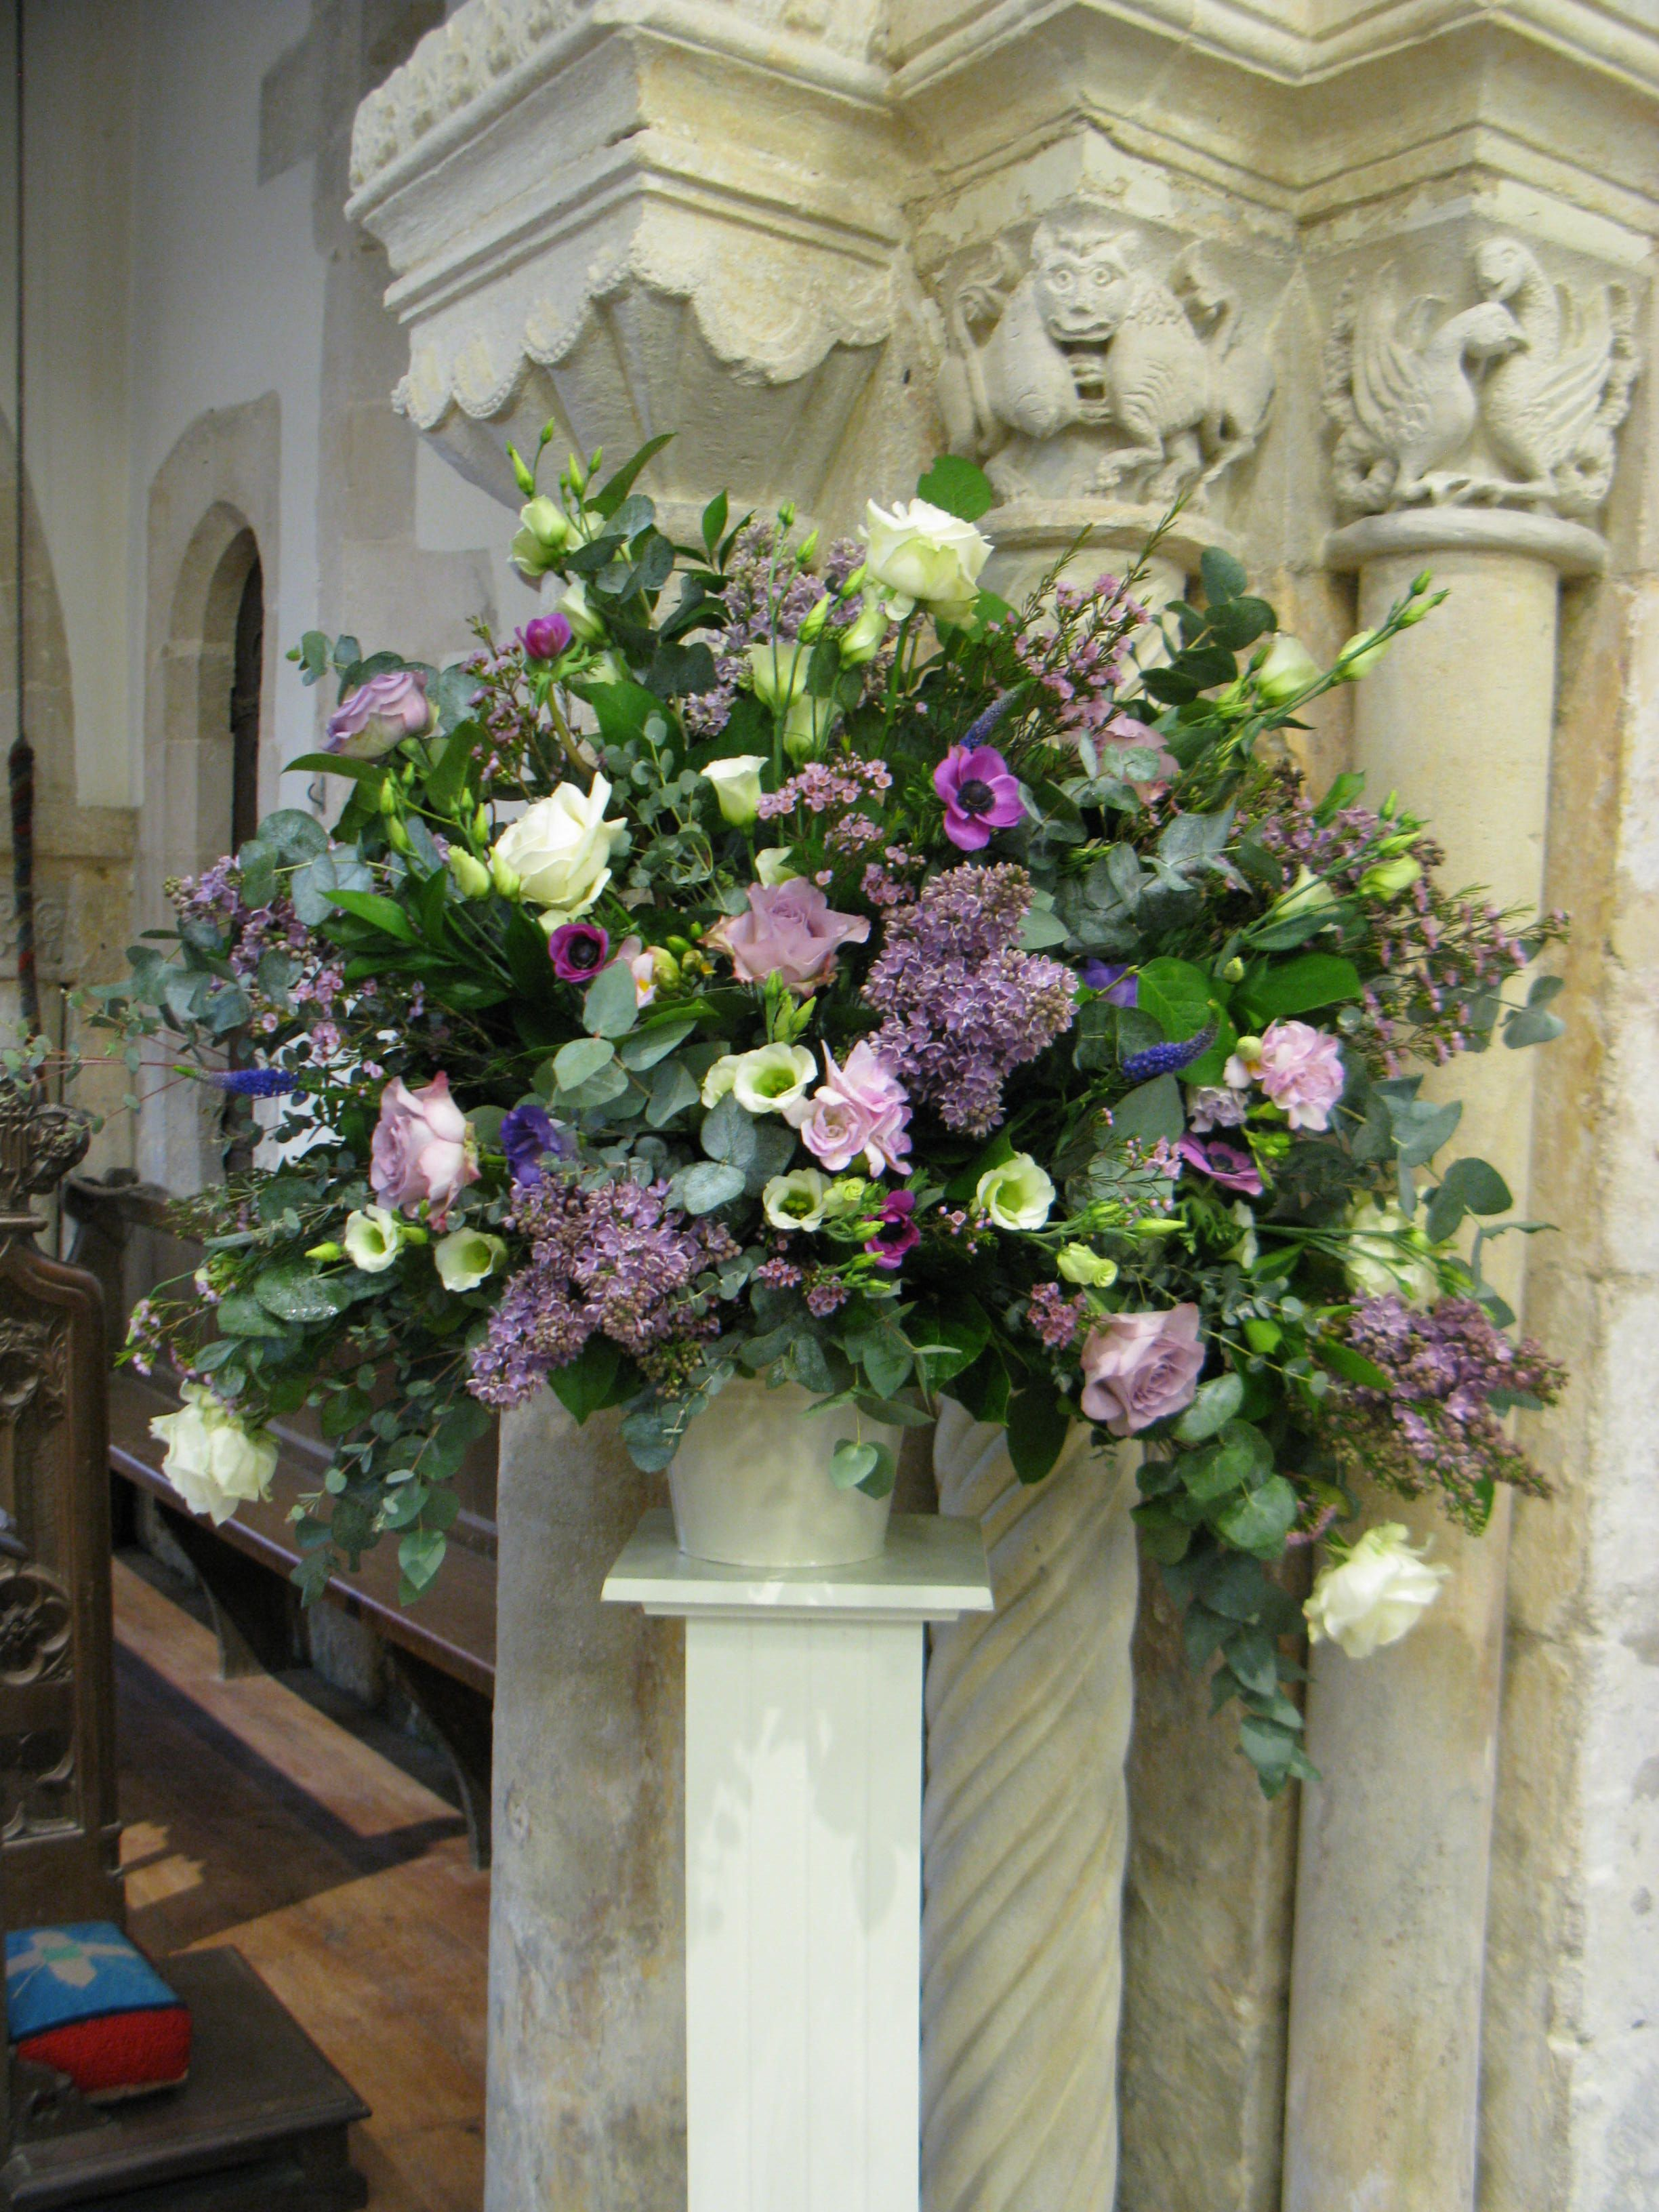 A Pedestal From a Spring Wedding in Jewel Coloured Flowers